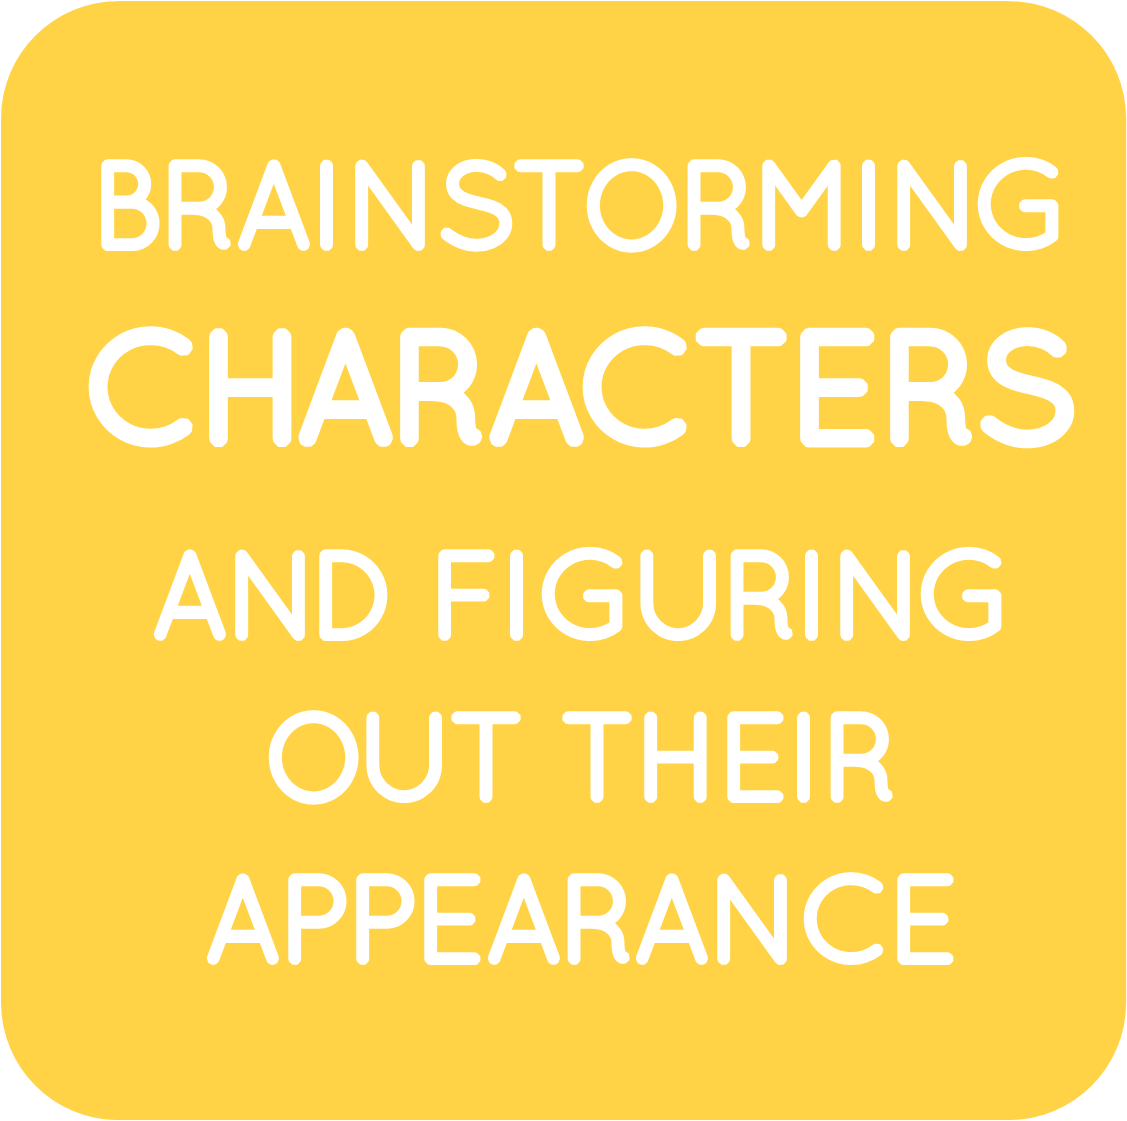 08-brainstorming characters figuring out their appearance.png